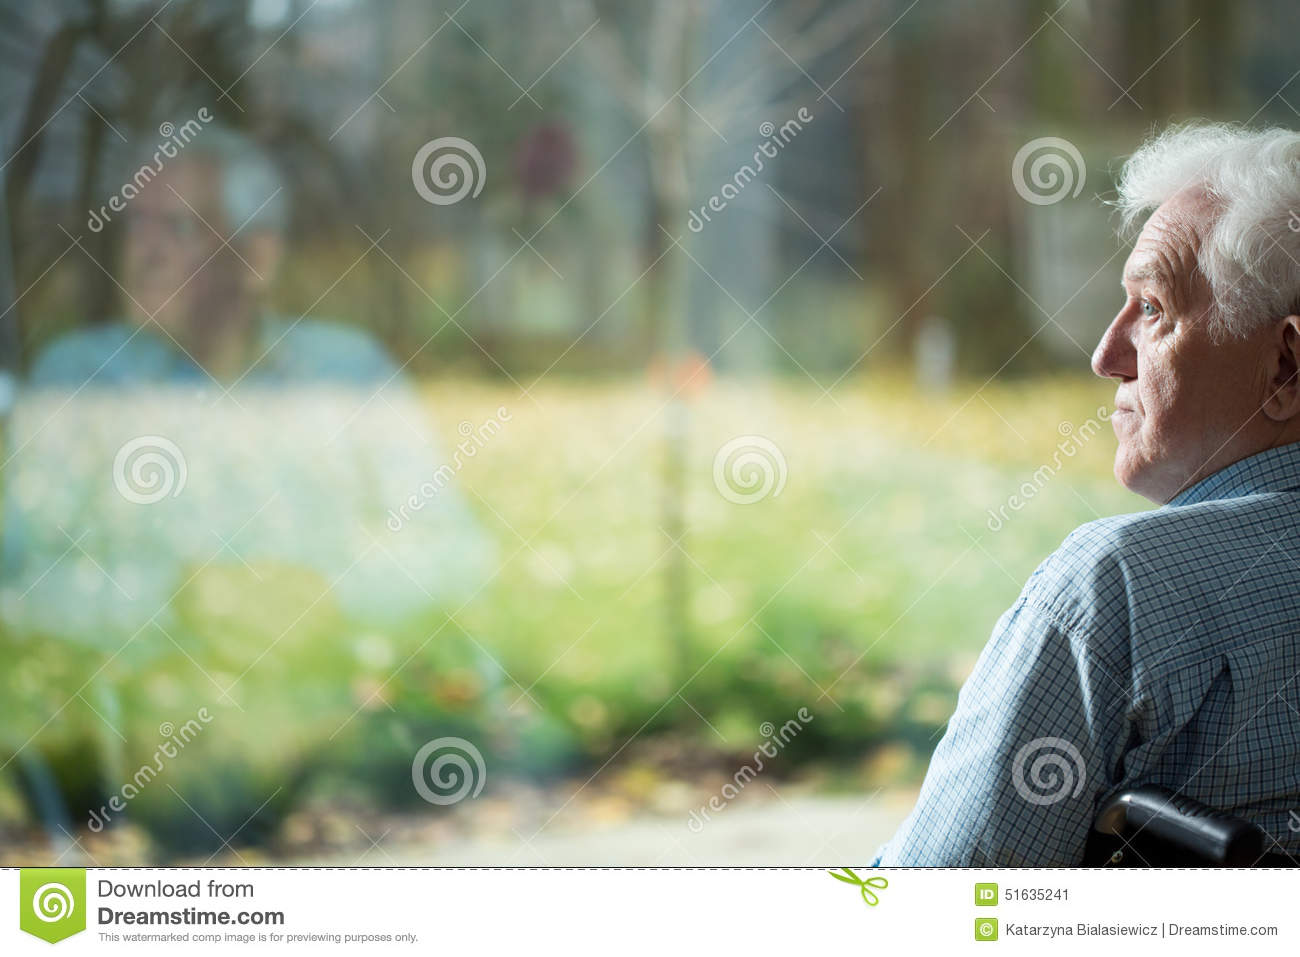 loneliness at old age The age of loneliness has people of all ages in it, from isobel the 19-year-old student to olive the feisty 100-year-old, ben the divorcee, jaye the 40-year-old singleton, richard the 72-year-old .